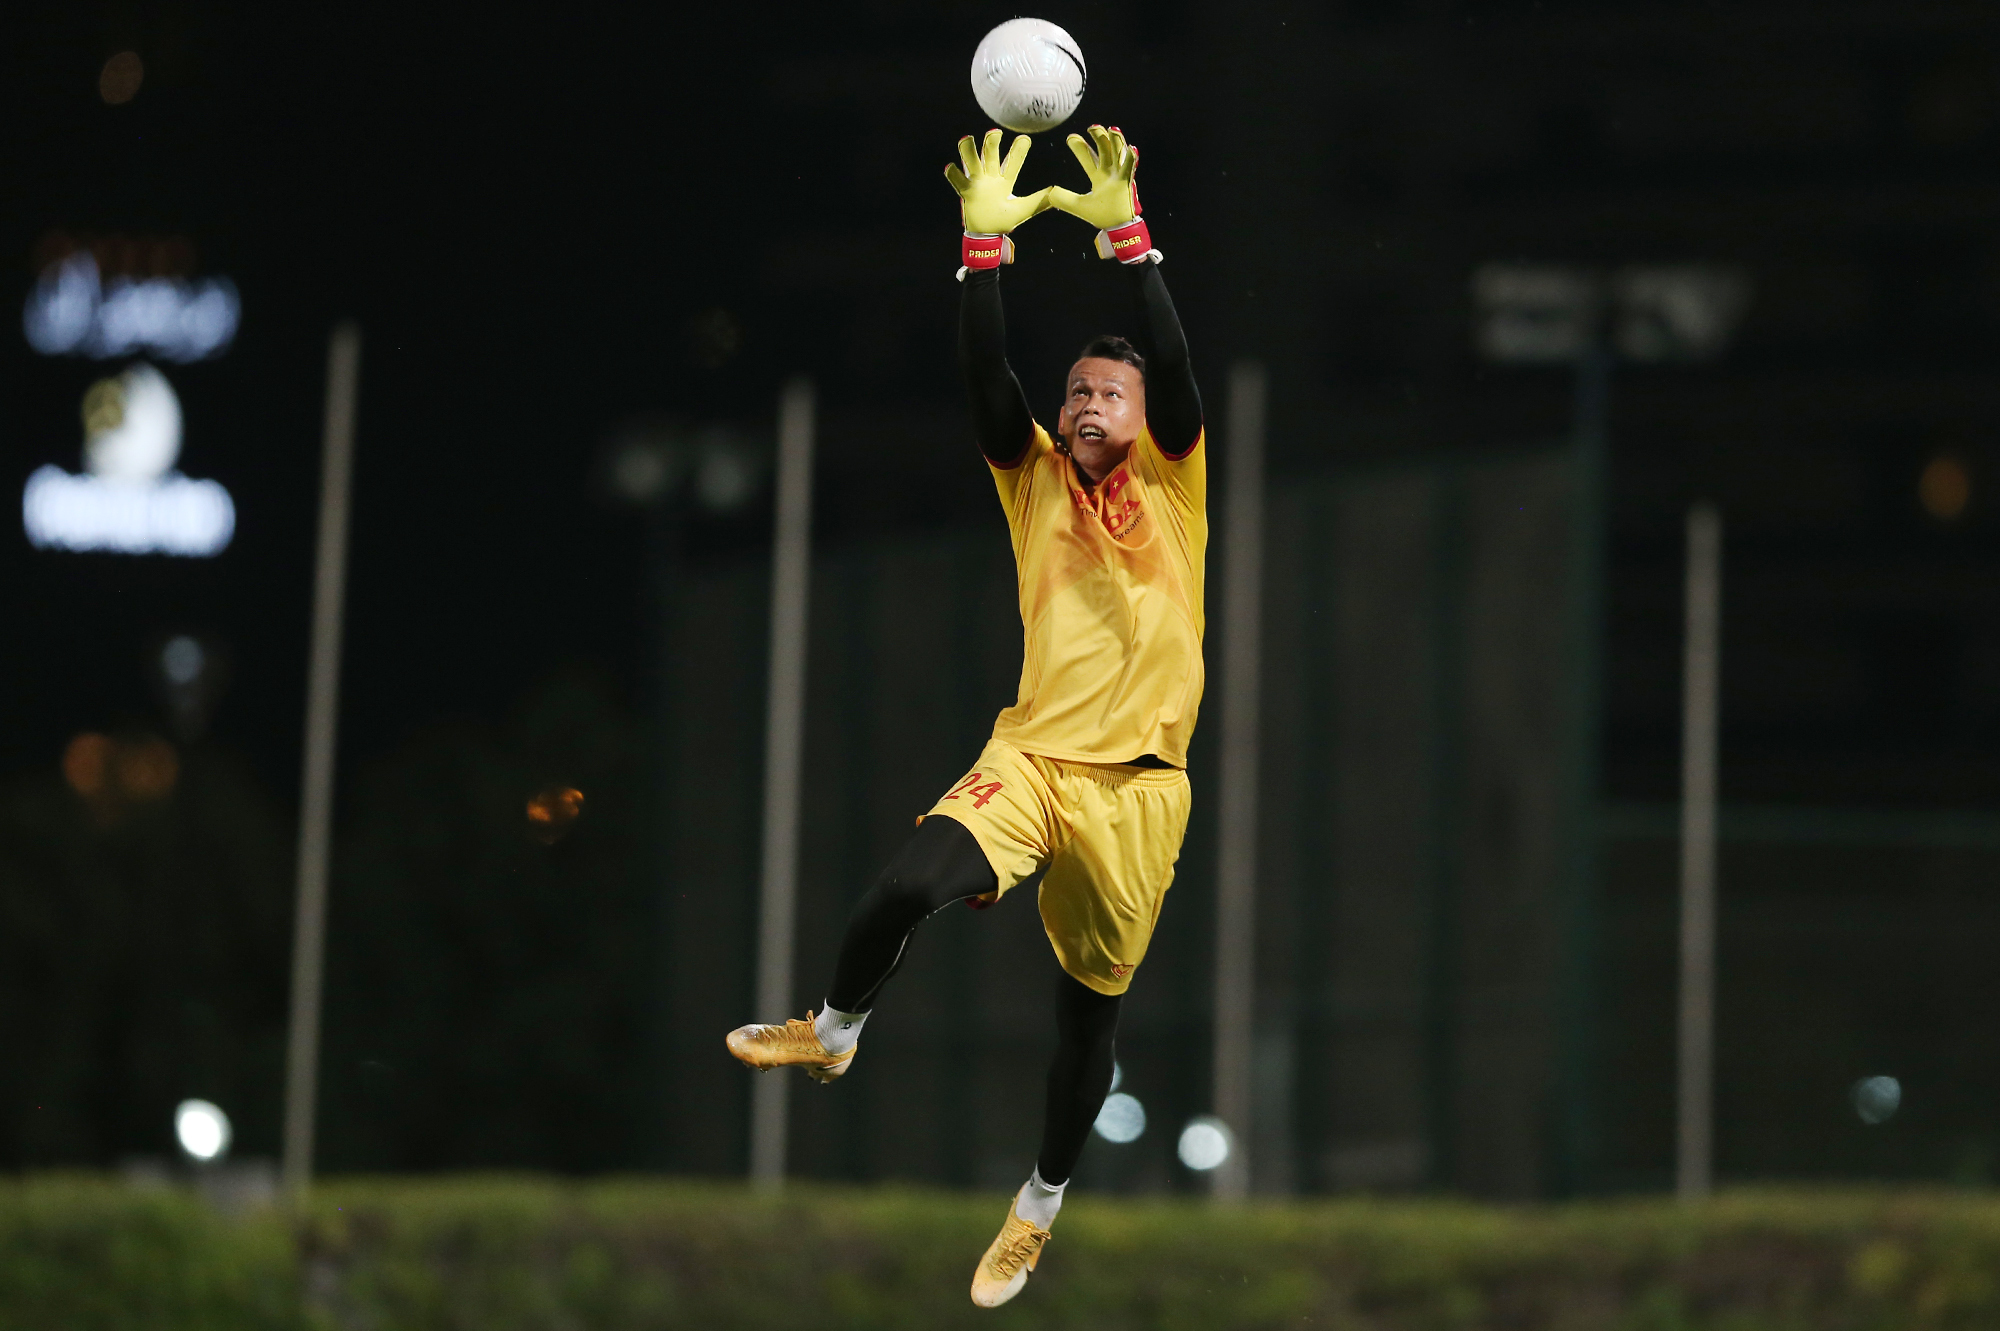 Truong is considered a bright candidate for the number one goalkeeper position. He meets all the teams requirements in terms of physique, experience as well as playing style. The 34 years old player from southern Dong Thap Province was summoned to the national team by former coach Henrique Calisto in 2008, when he was 21 years old.He was the number one goalkeeper of the U-23 squad attending the 2009 SEA Games in Laos. Here, Truong played quite stable, before sustaining an injured shoulder, leading to a 0-1 defeat in the final against Malaysia. In 2010, he again made a mistake in the teams 0-2 loss to Malaysia in the first leg of the AFF Cup semi-final.